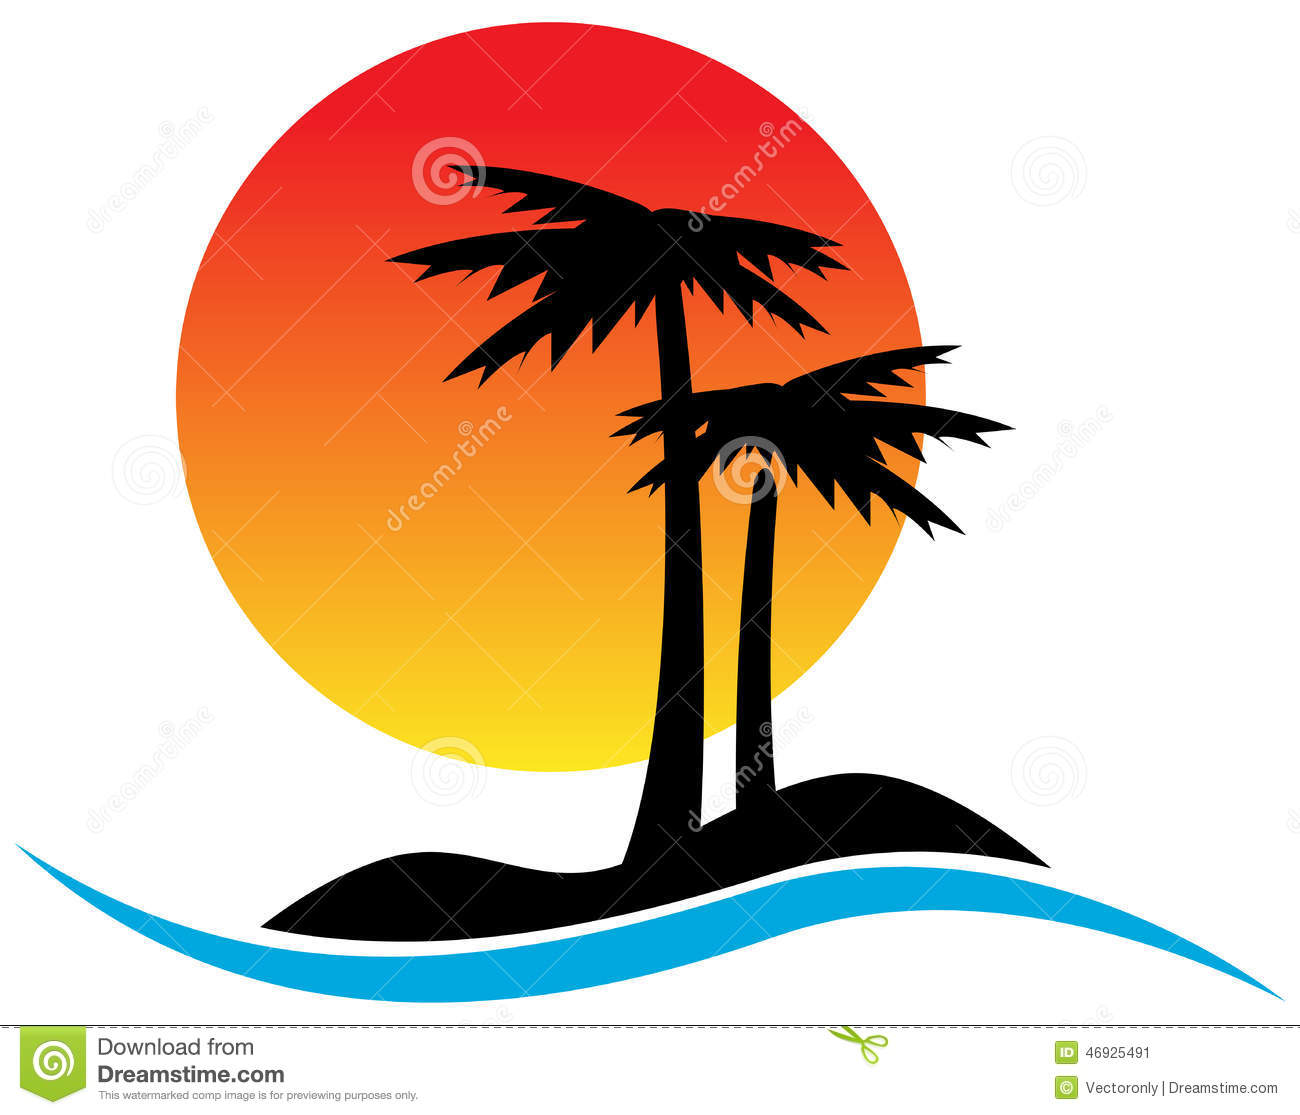 Tropical Logo Stock Vector - Image: 46925491